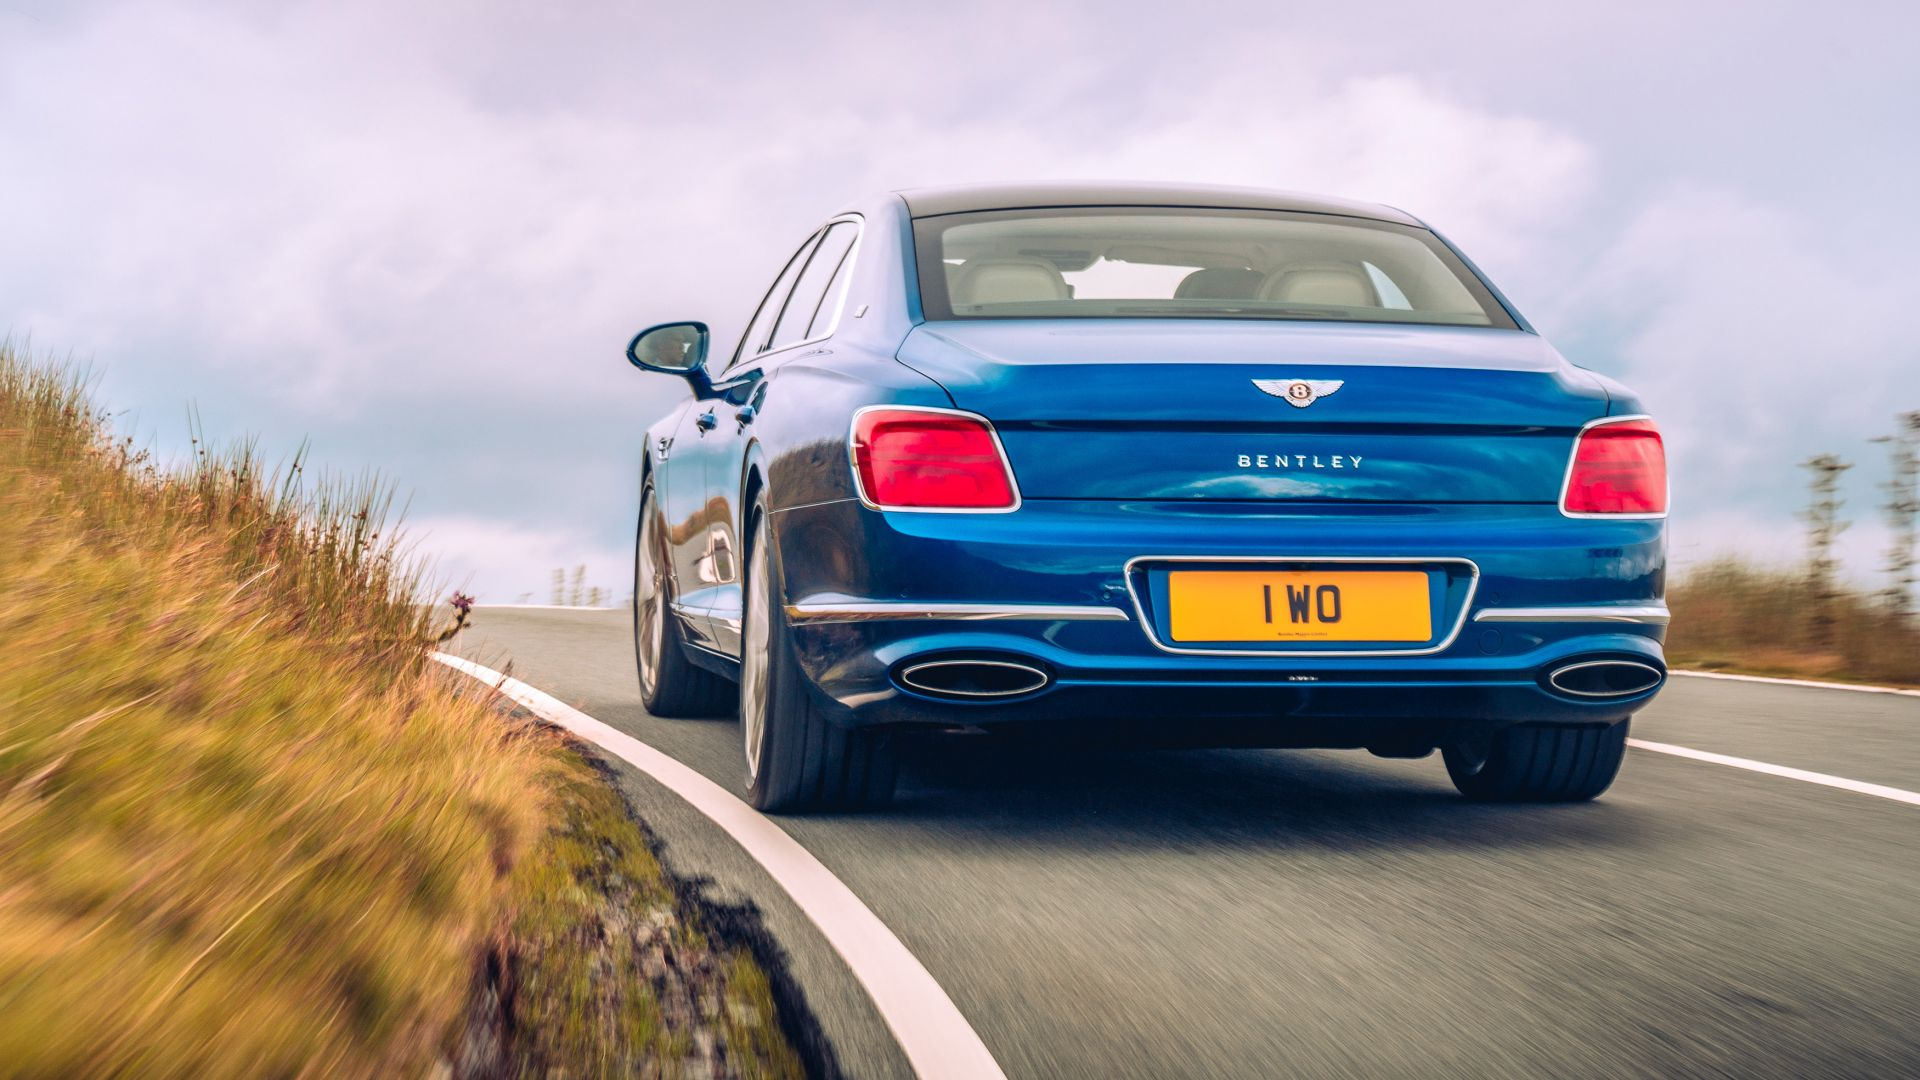 Bentley Flying Spur, luxury cars, 2020 cars, 4K (horizontal)